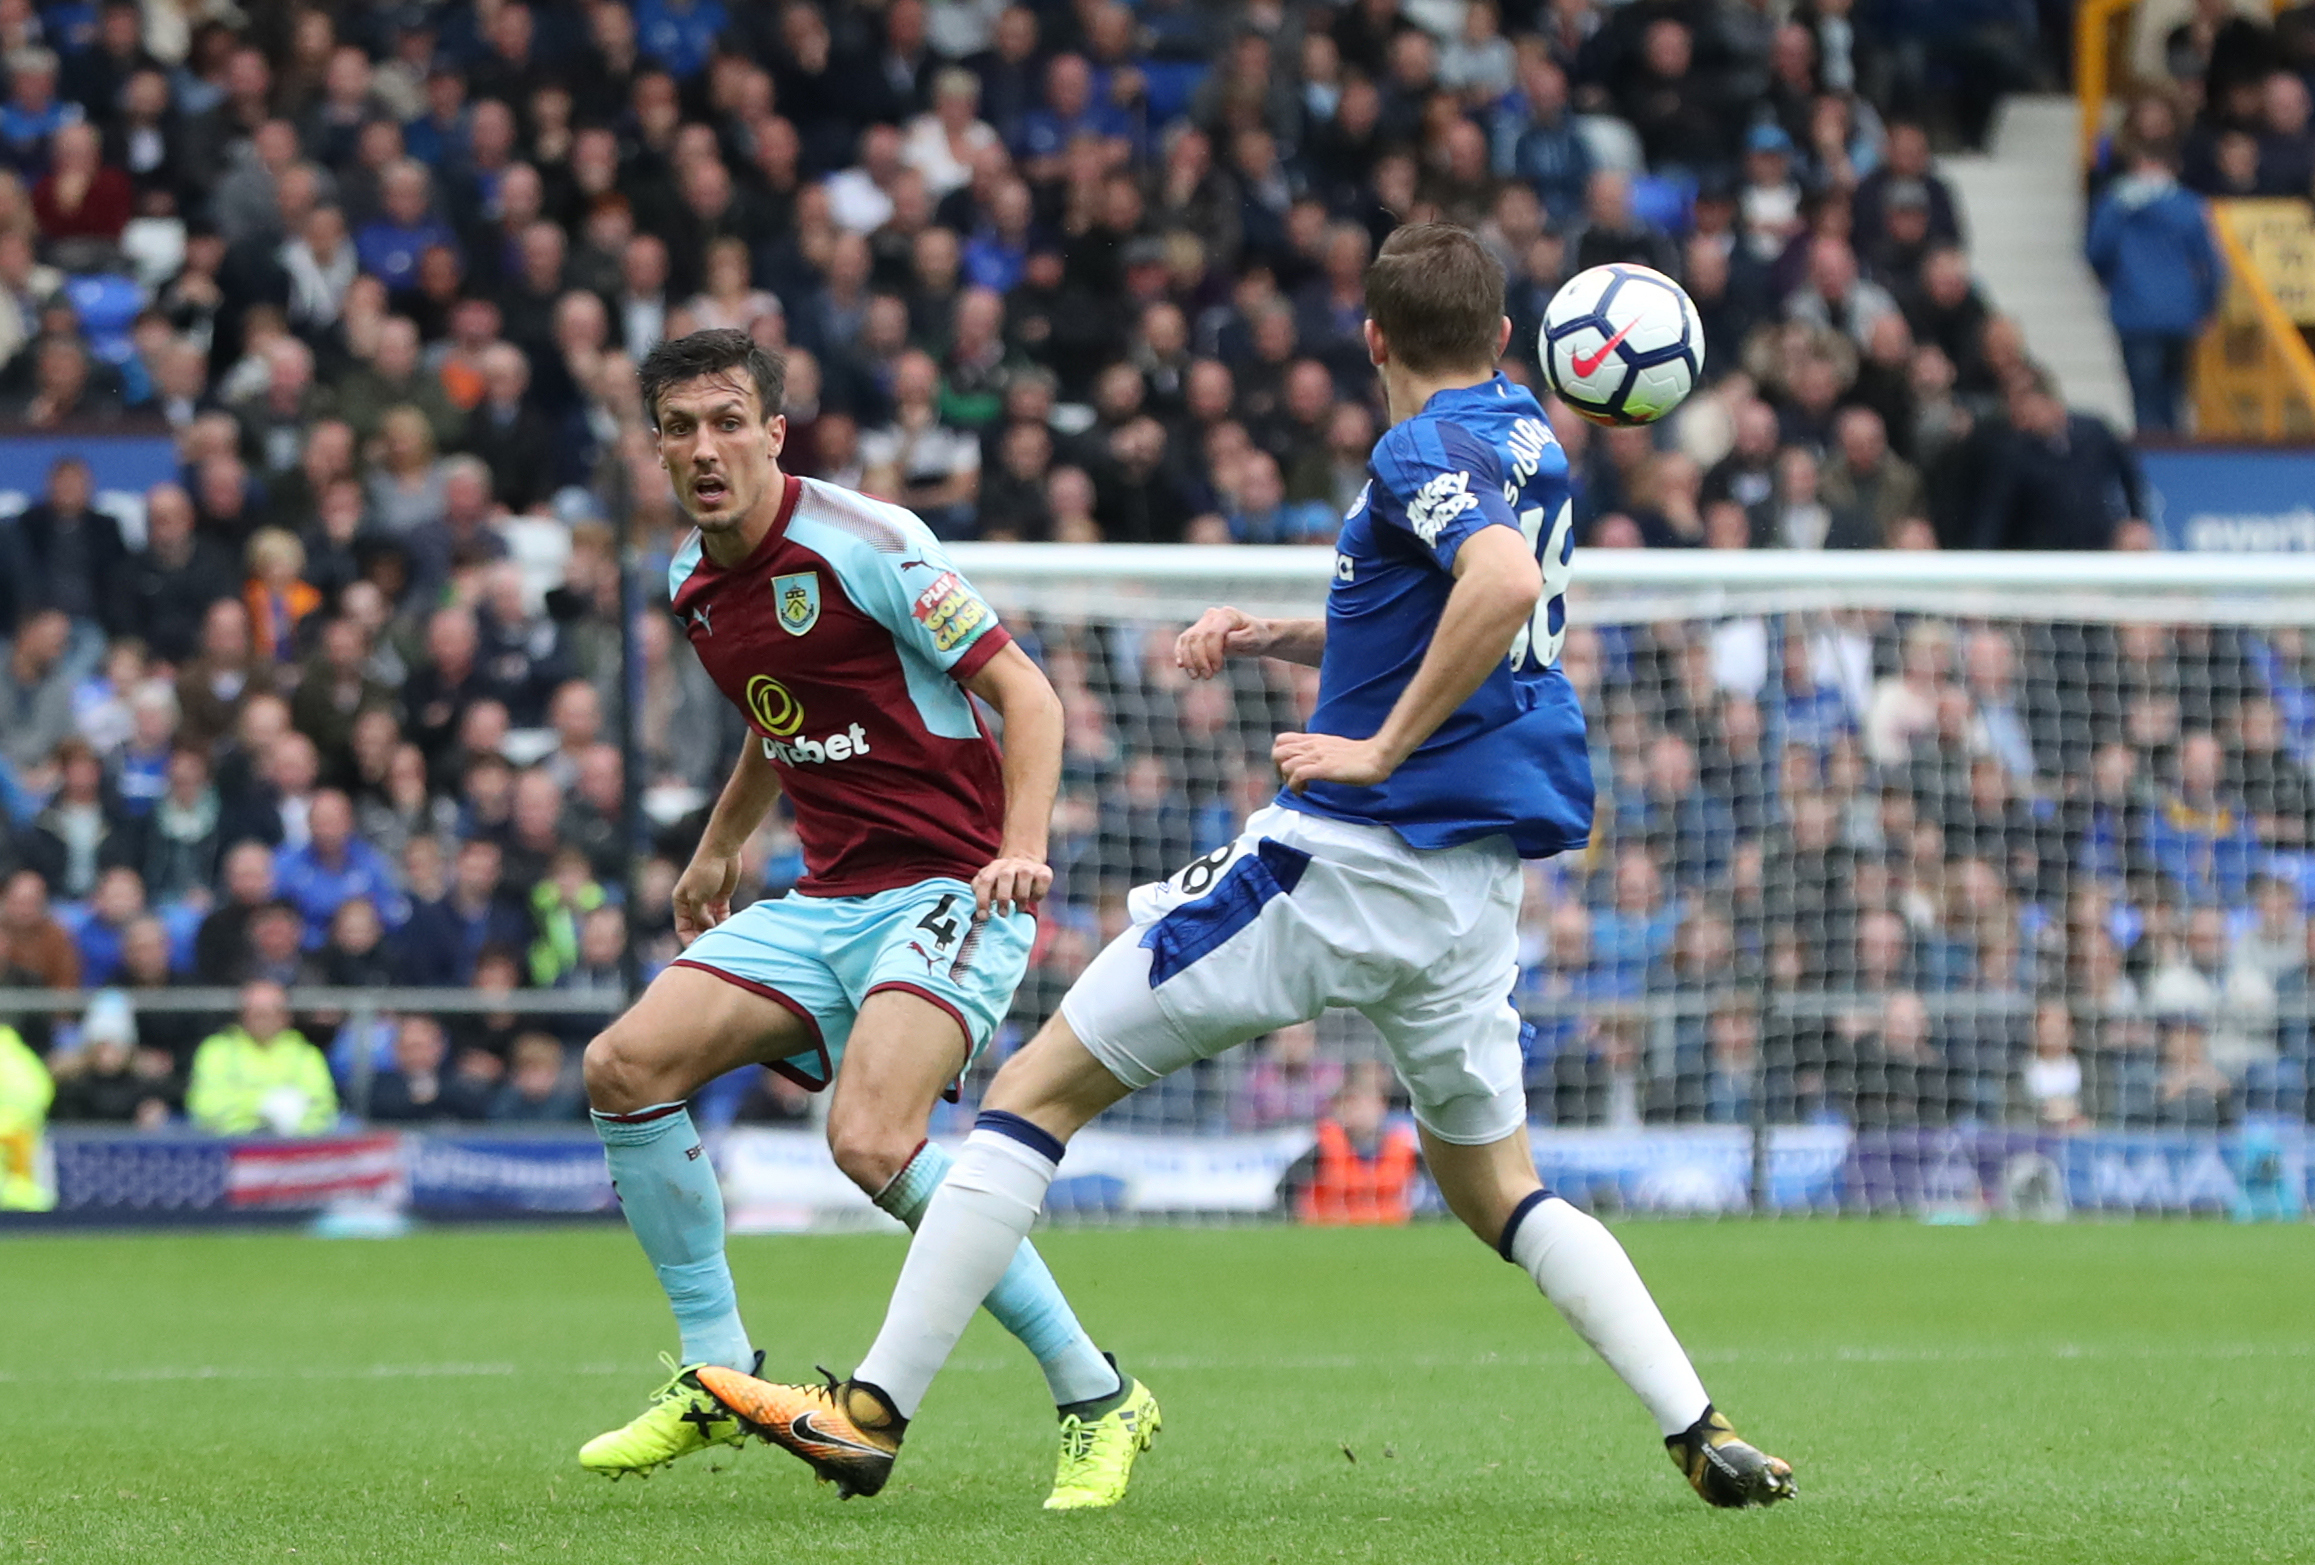 Jack Cork has been in great form this season and deserves a chance to make an impression with England